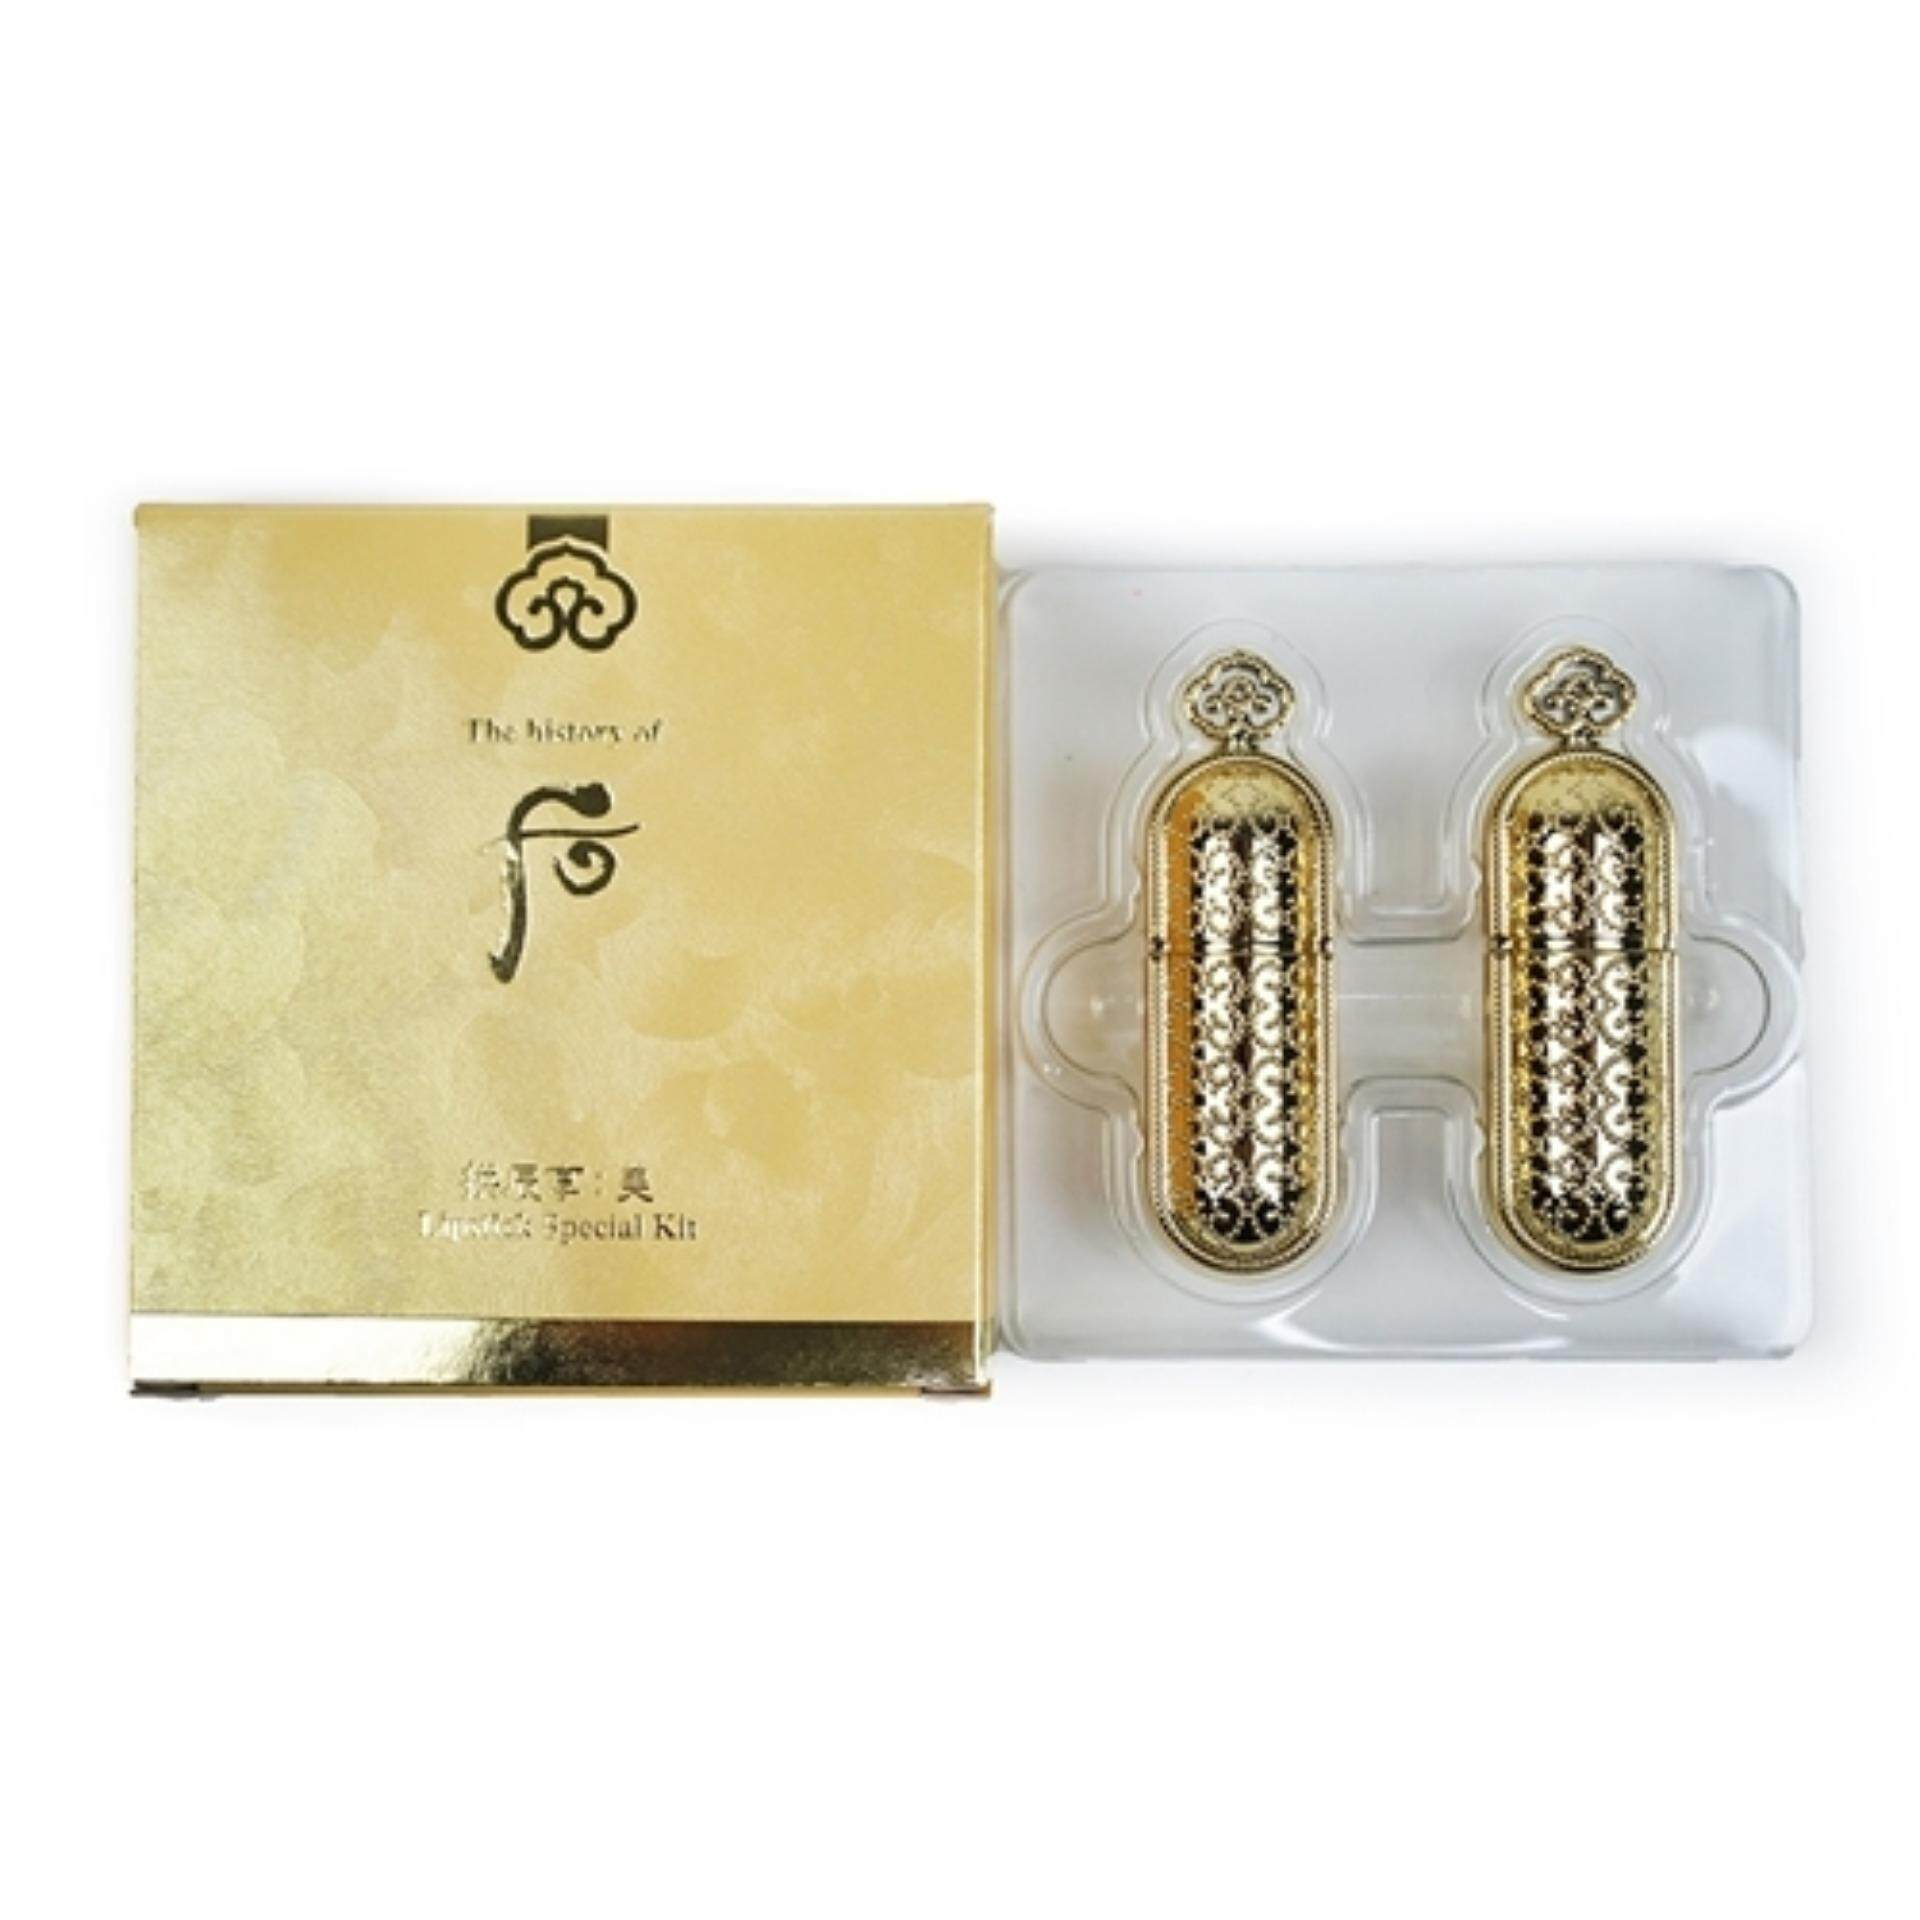 The History of Whoo Luxury Lipstick Miniature Set (2 petit lipsticks)